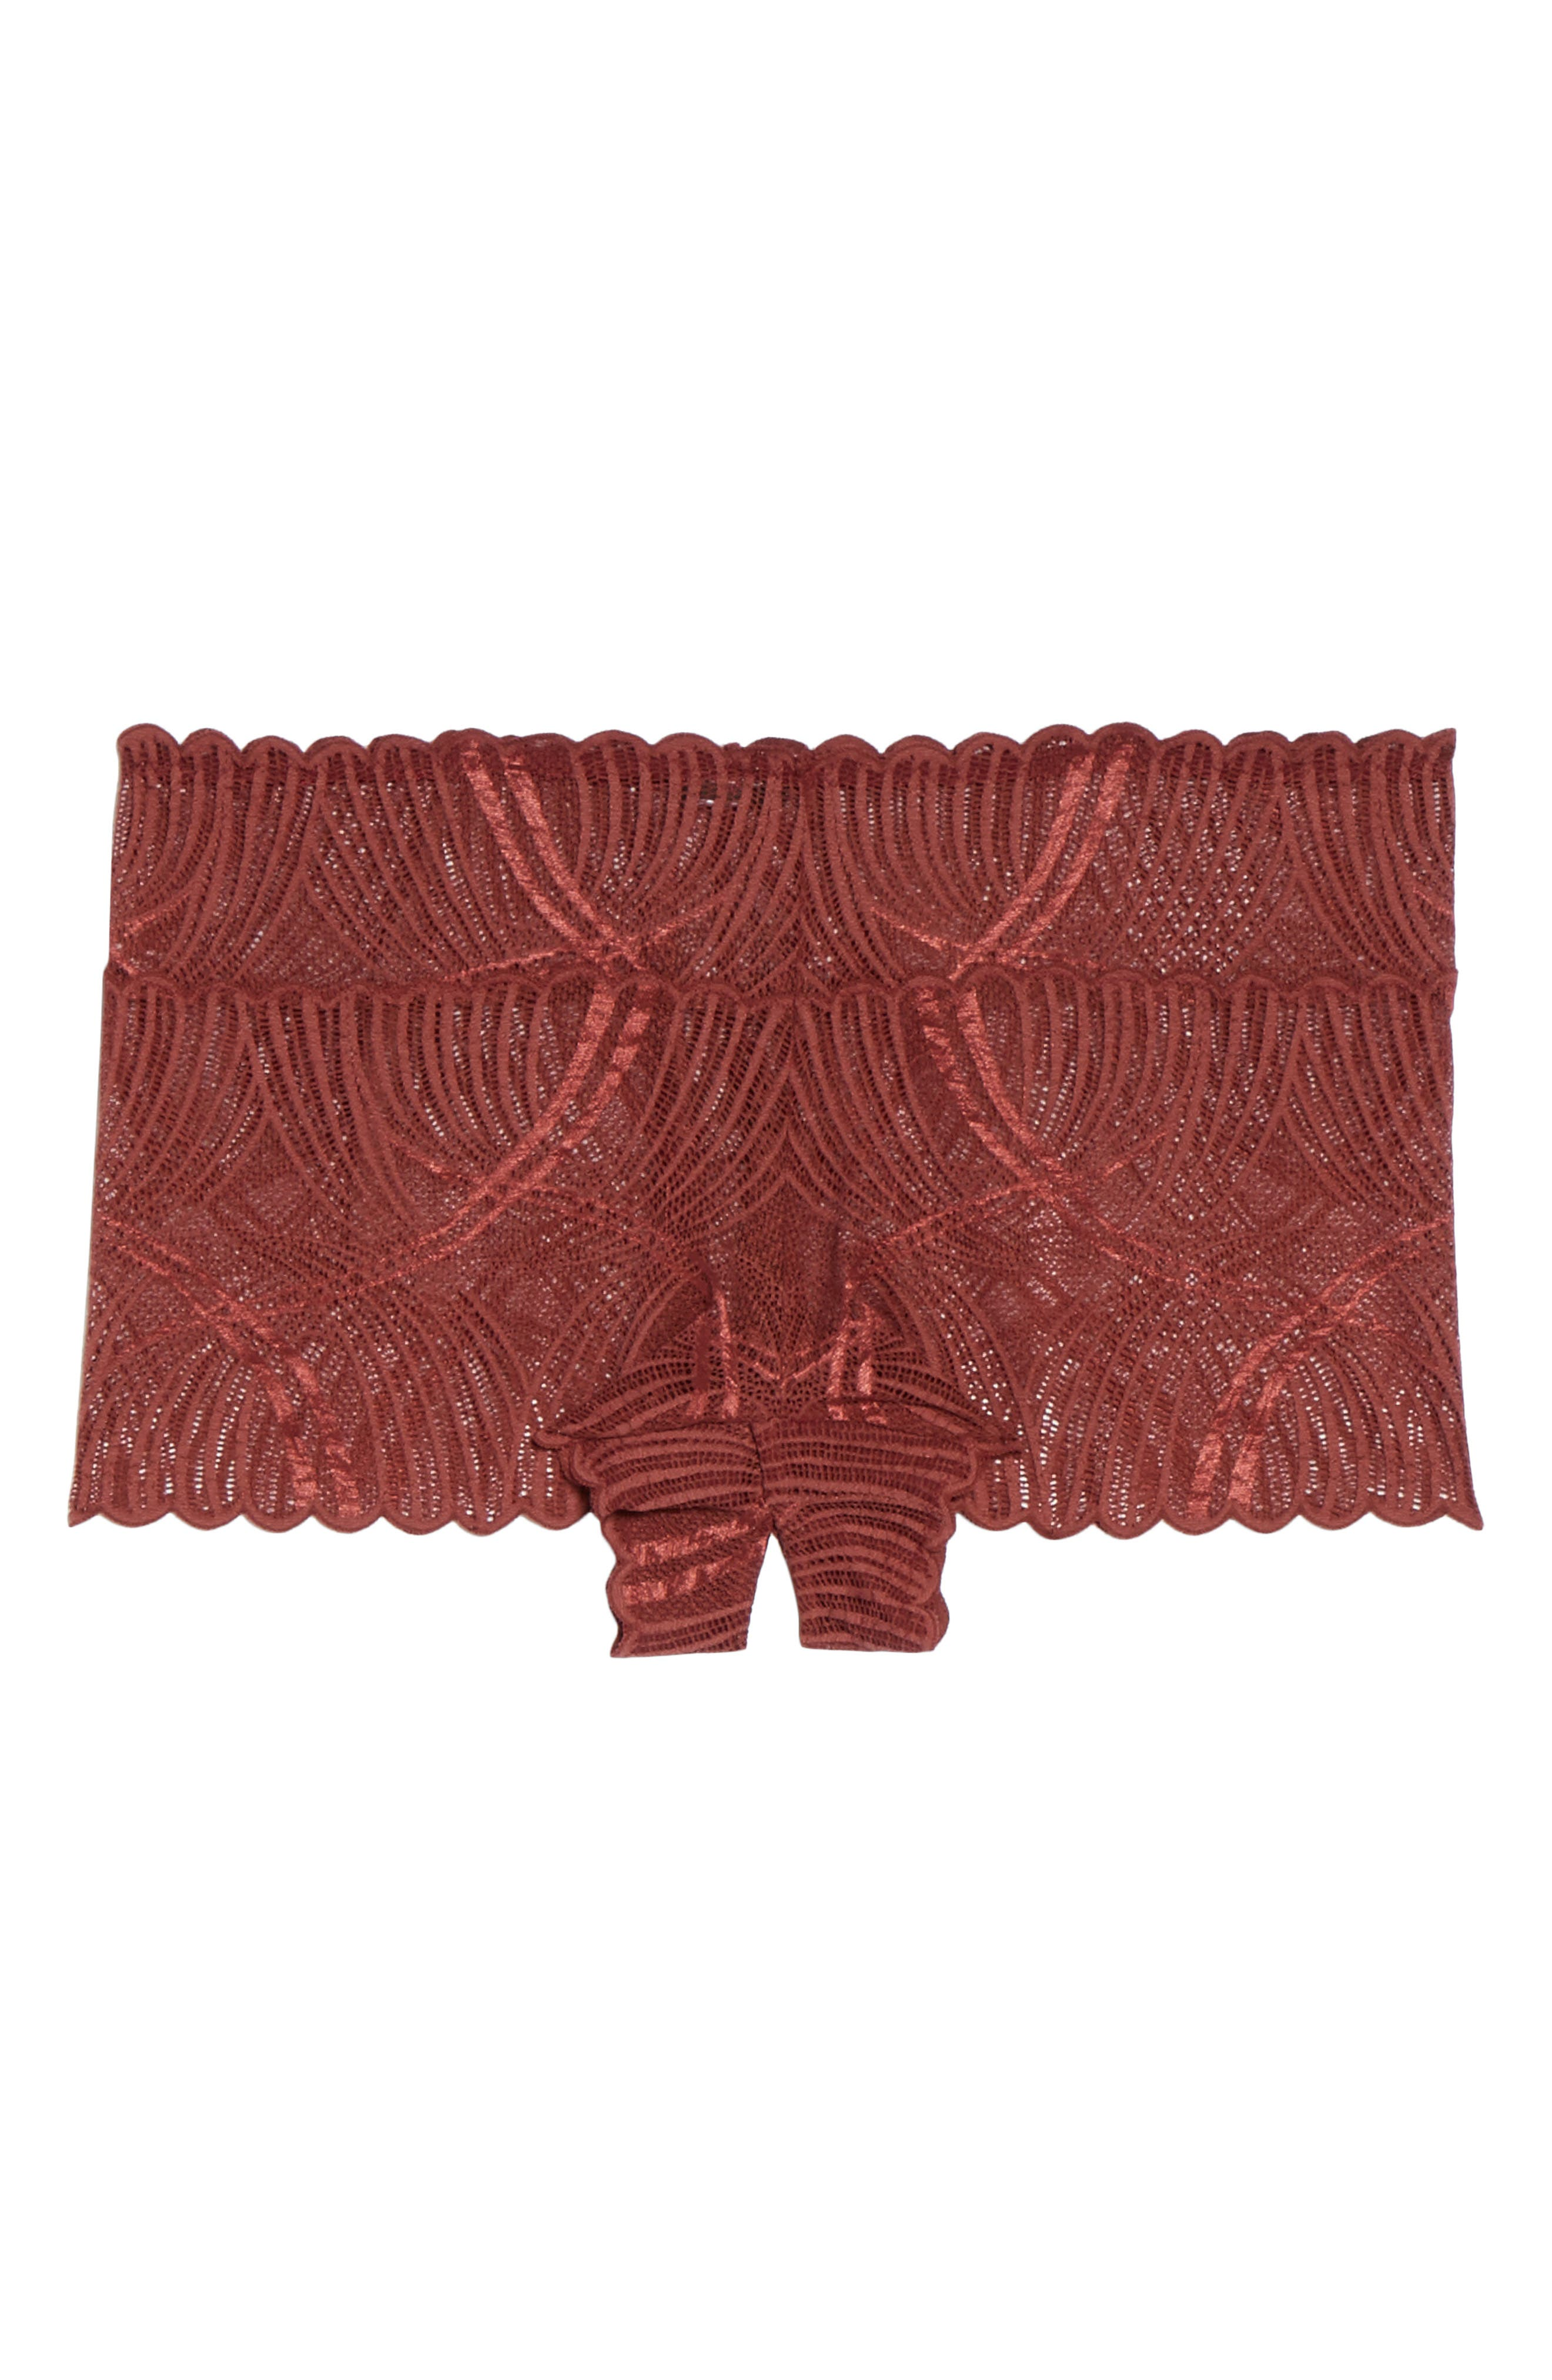 Minoa Naughtie Open Gusset Boyshorts,                             Alternate thumbnail 22, color,